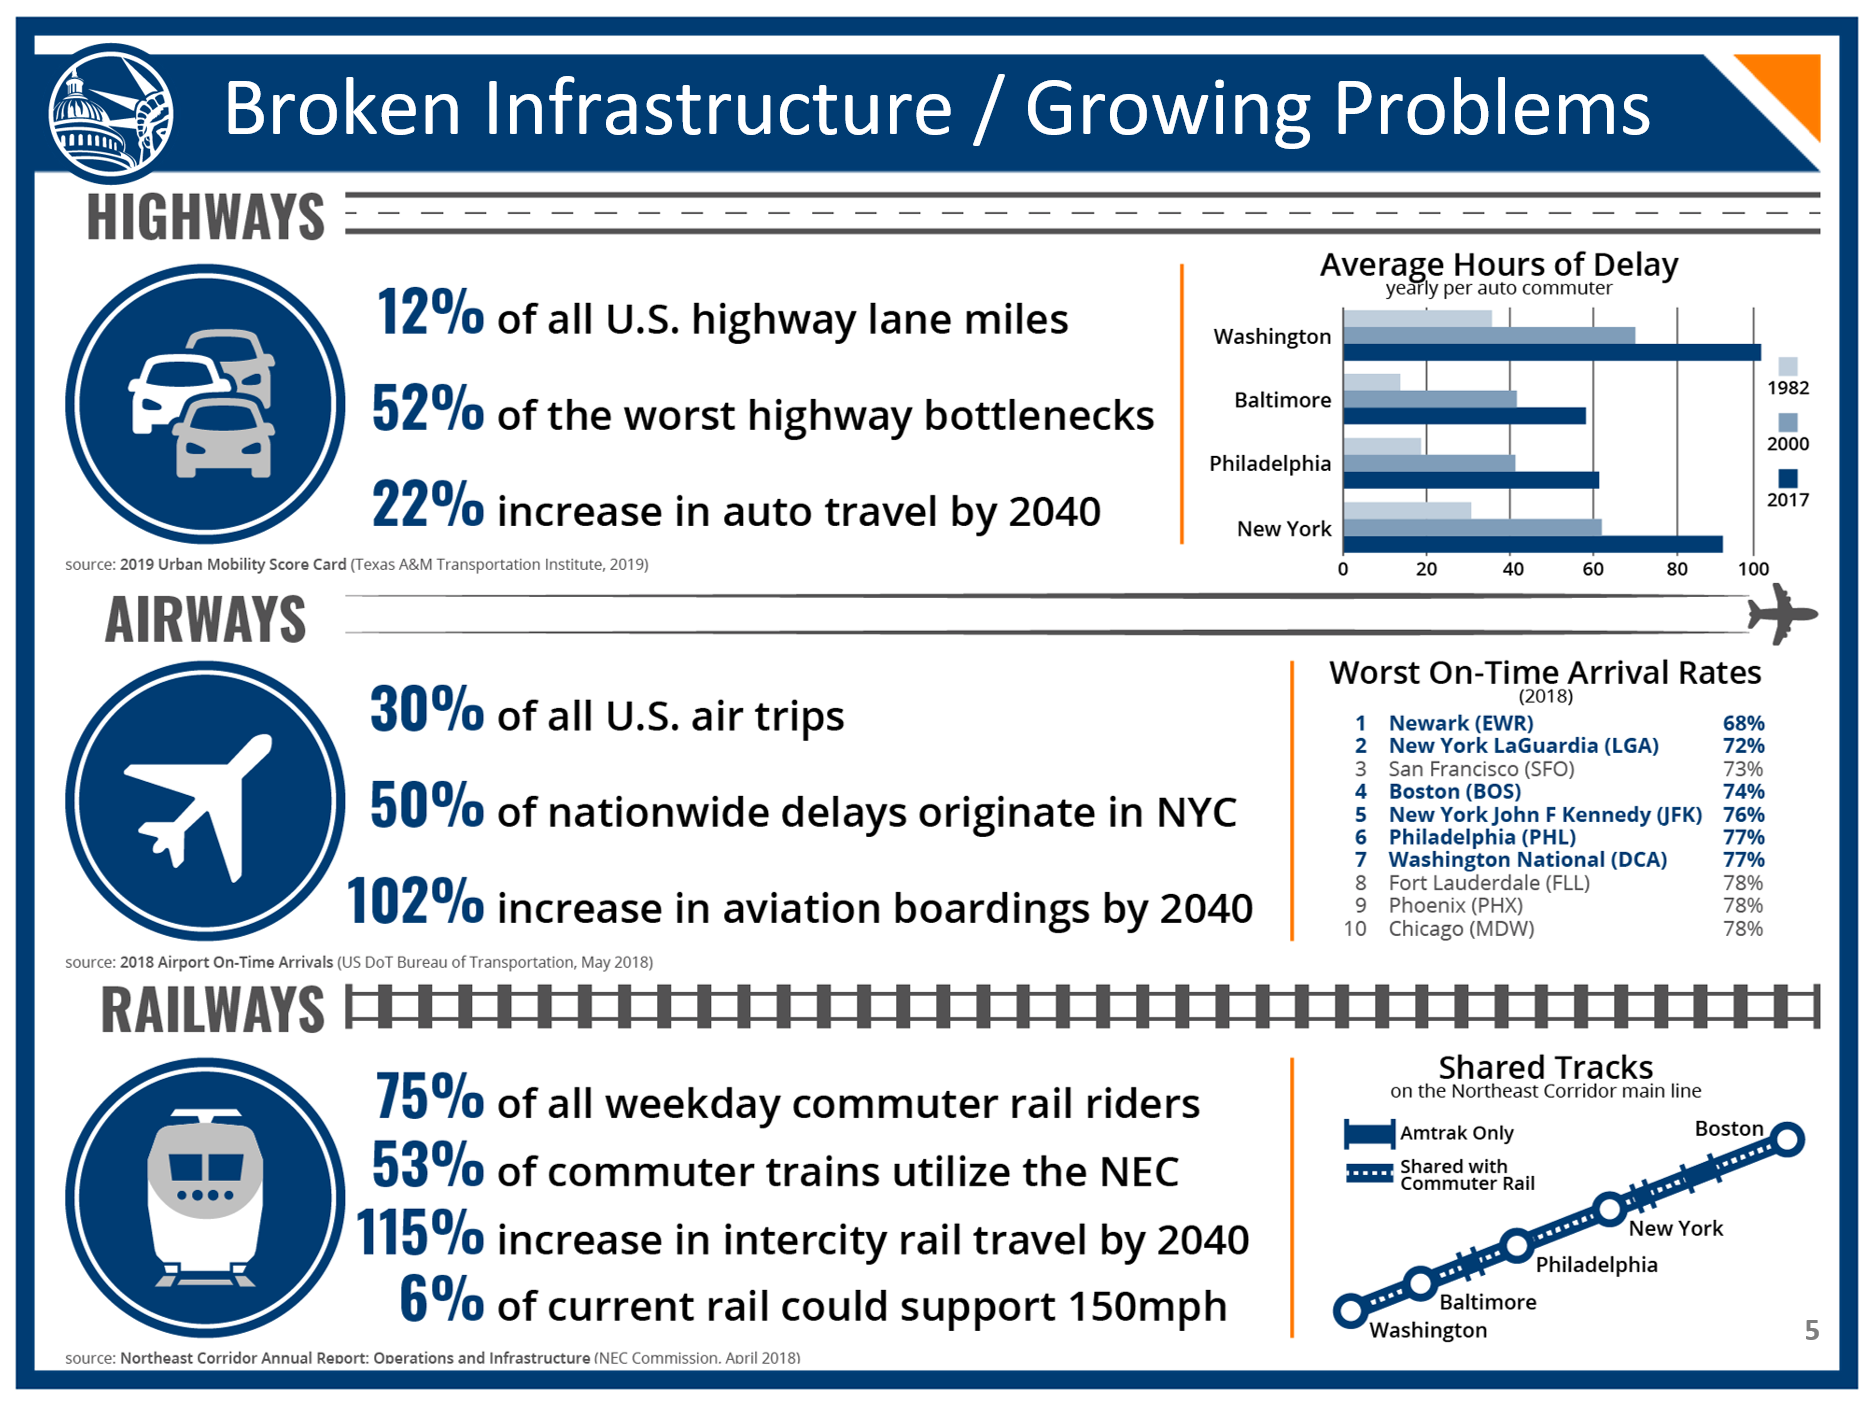 Infographic showing highway, airway, and railway transportation infrastructure issues in the Northeast Corridor